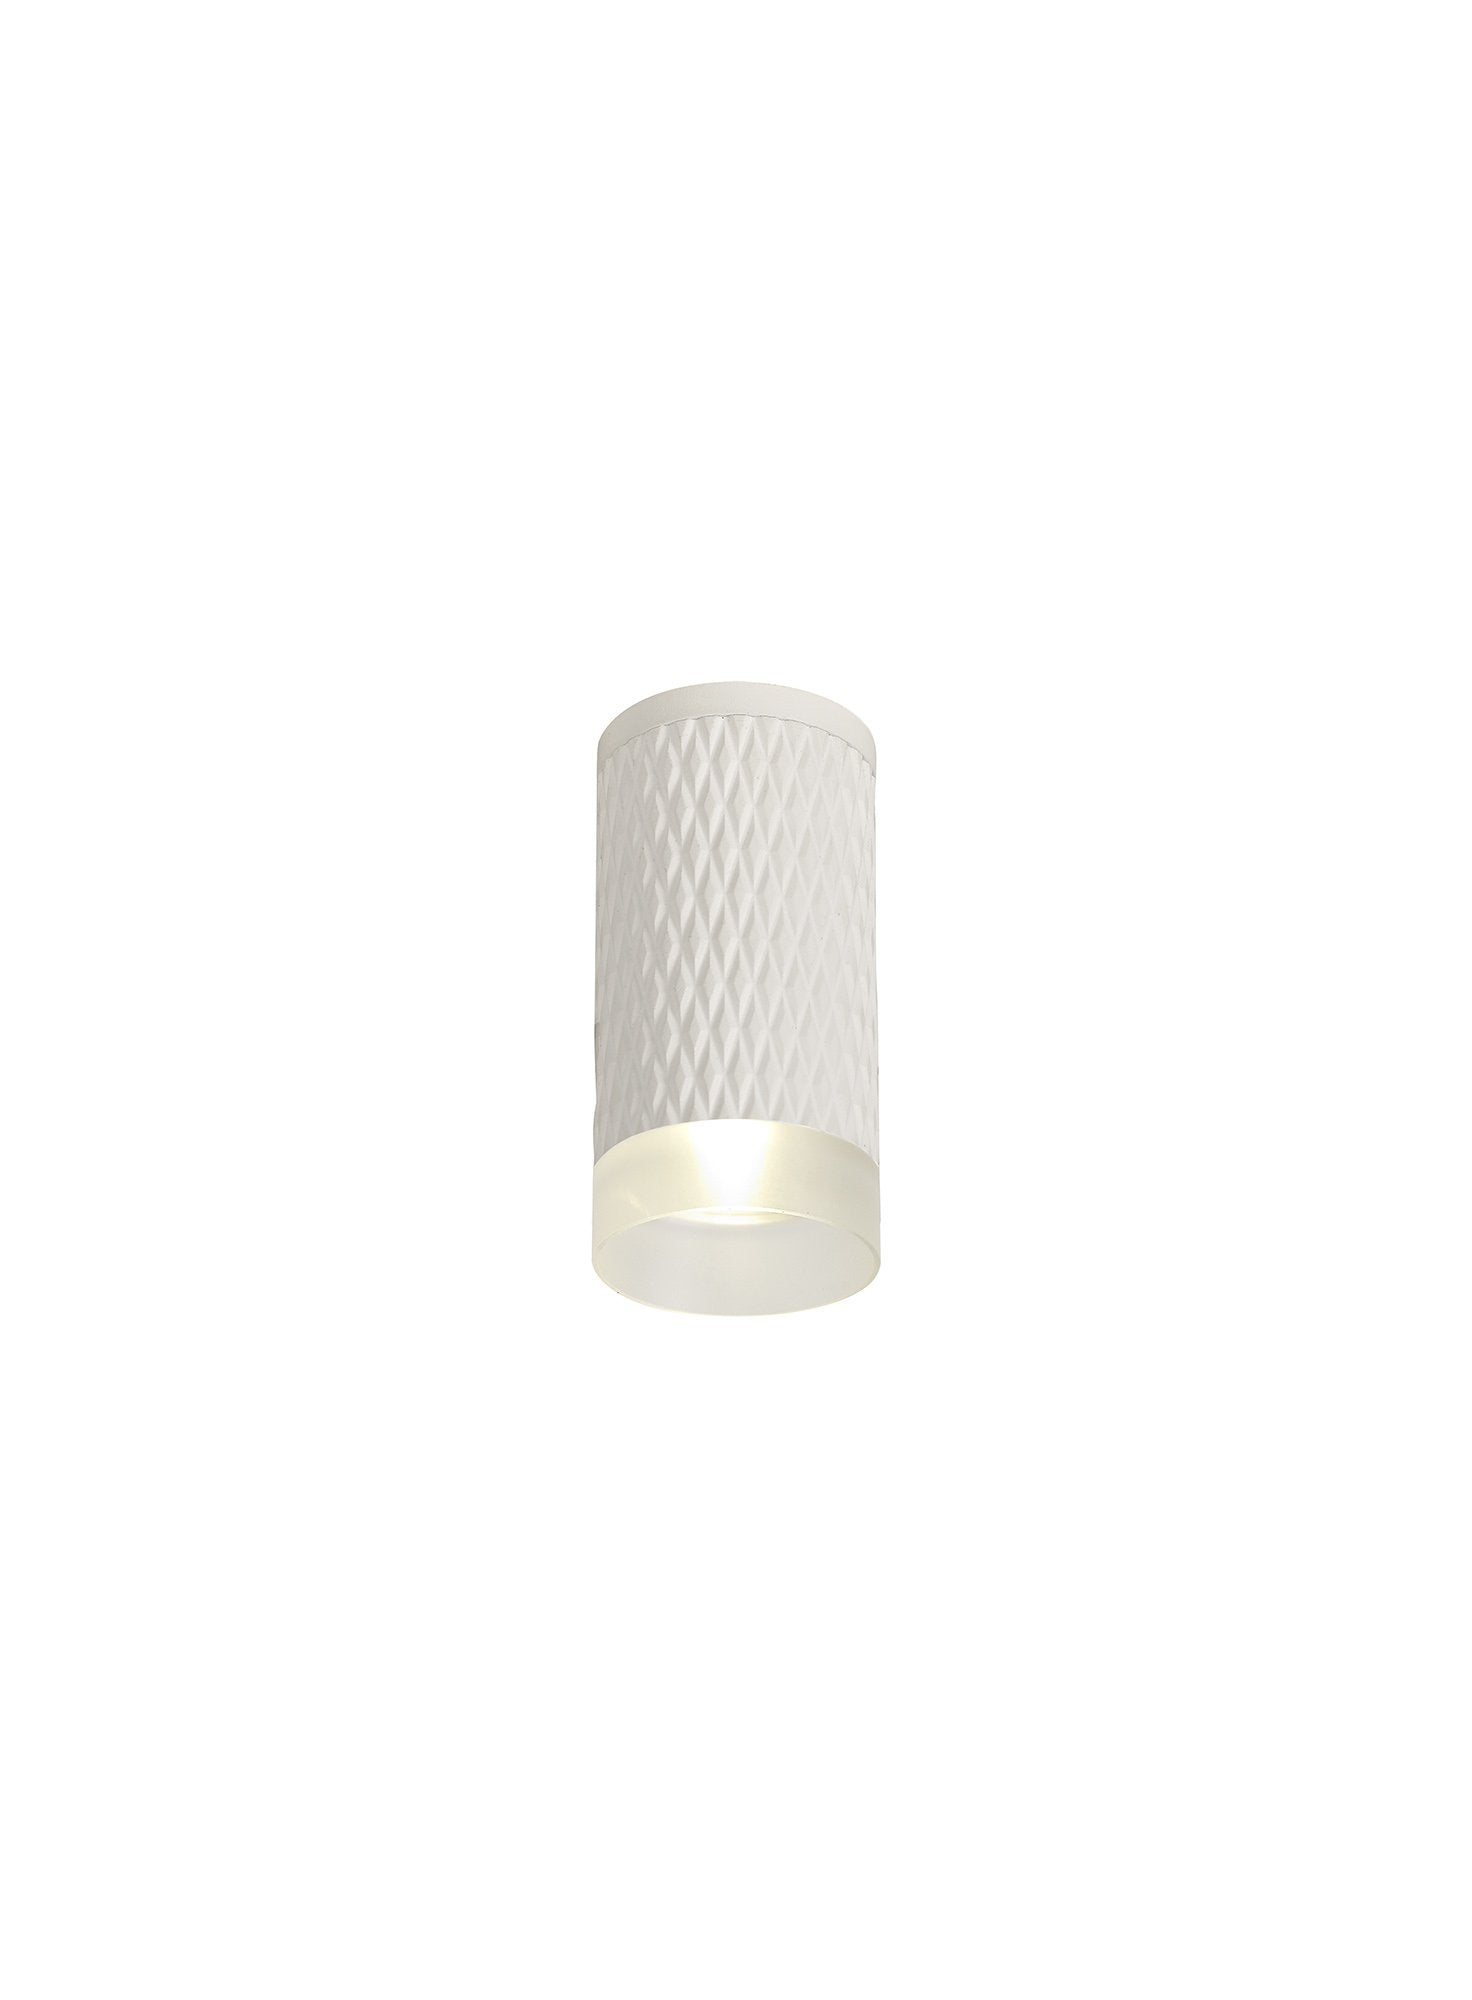 DELPH 1 Light 11cm Surface Mounted Ceiling GU10, Sand White/Acrylic Ring